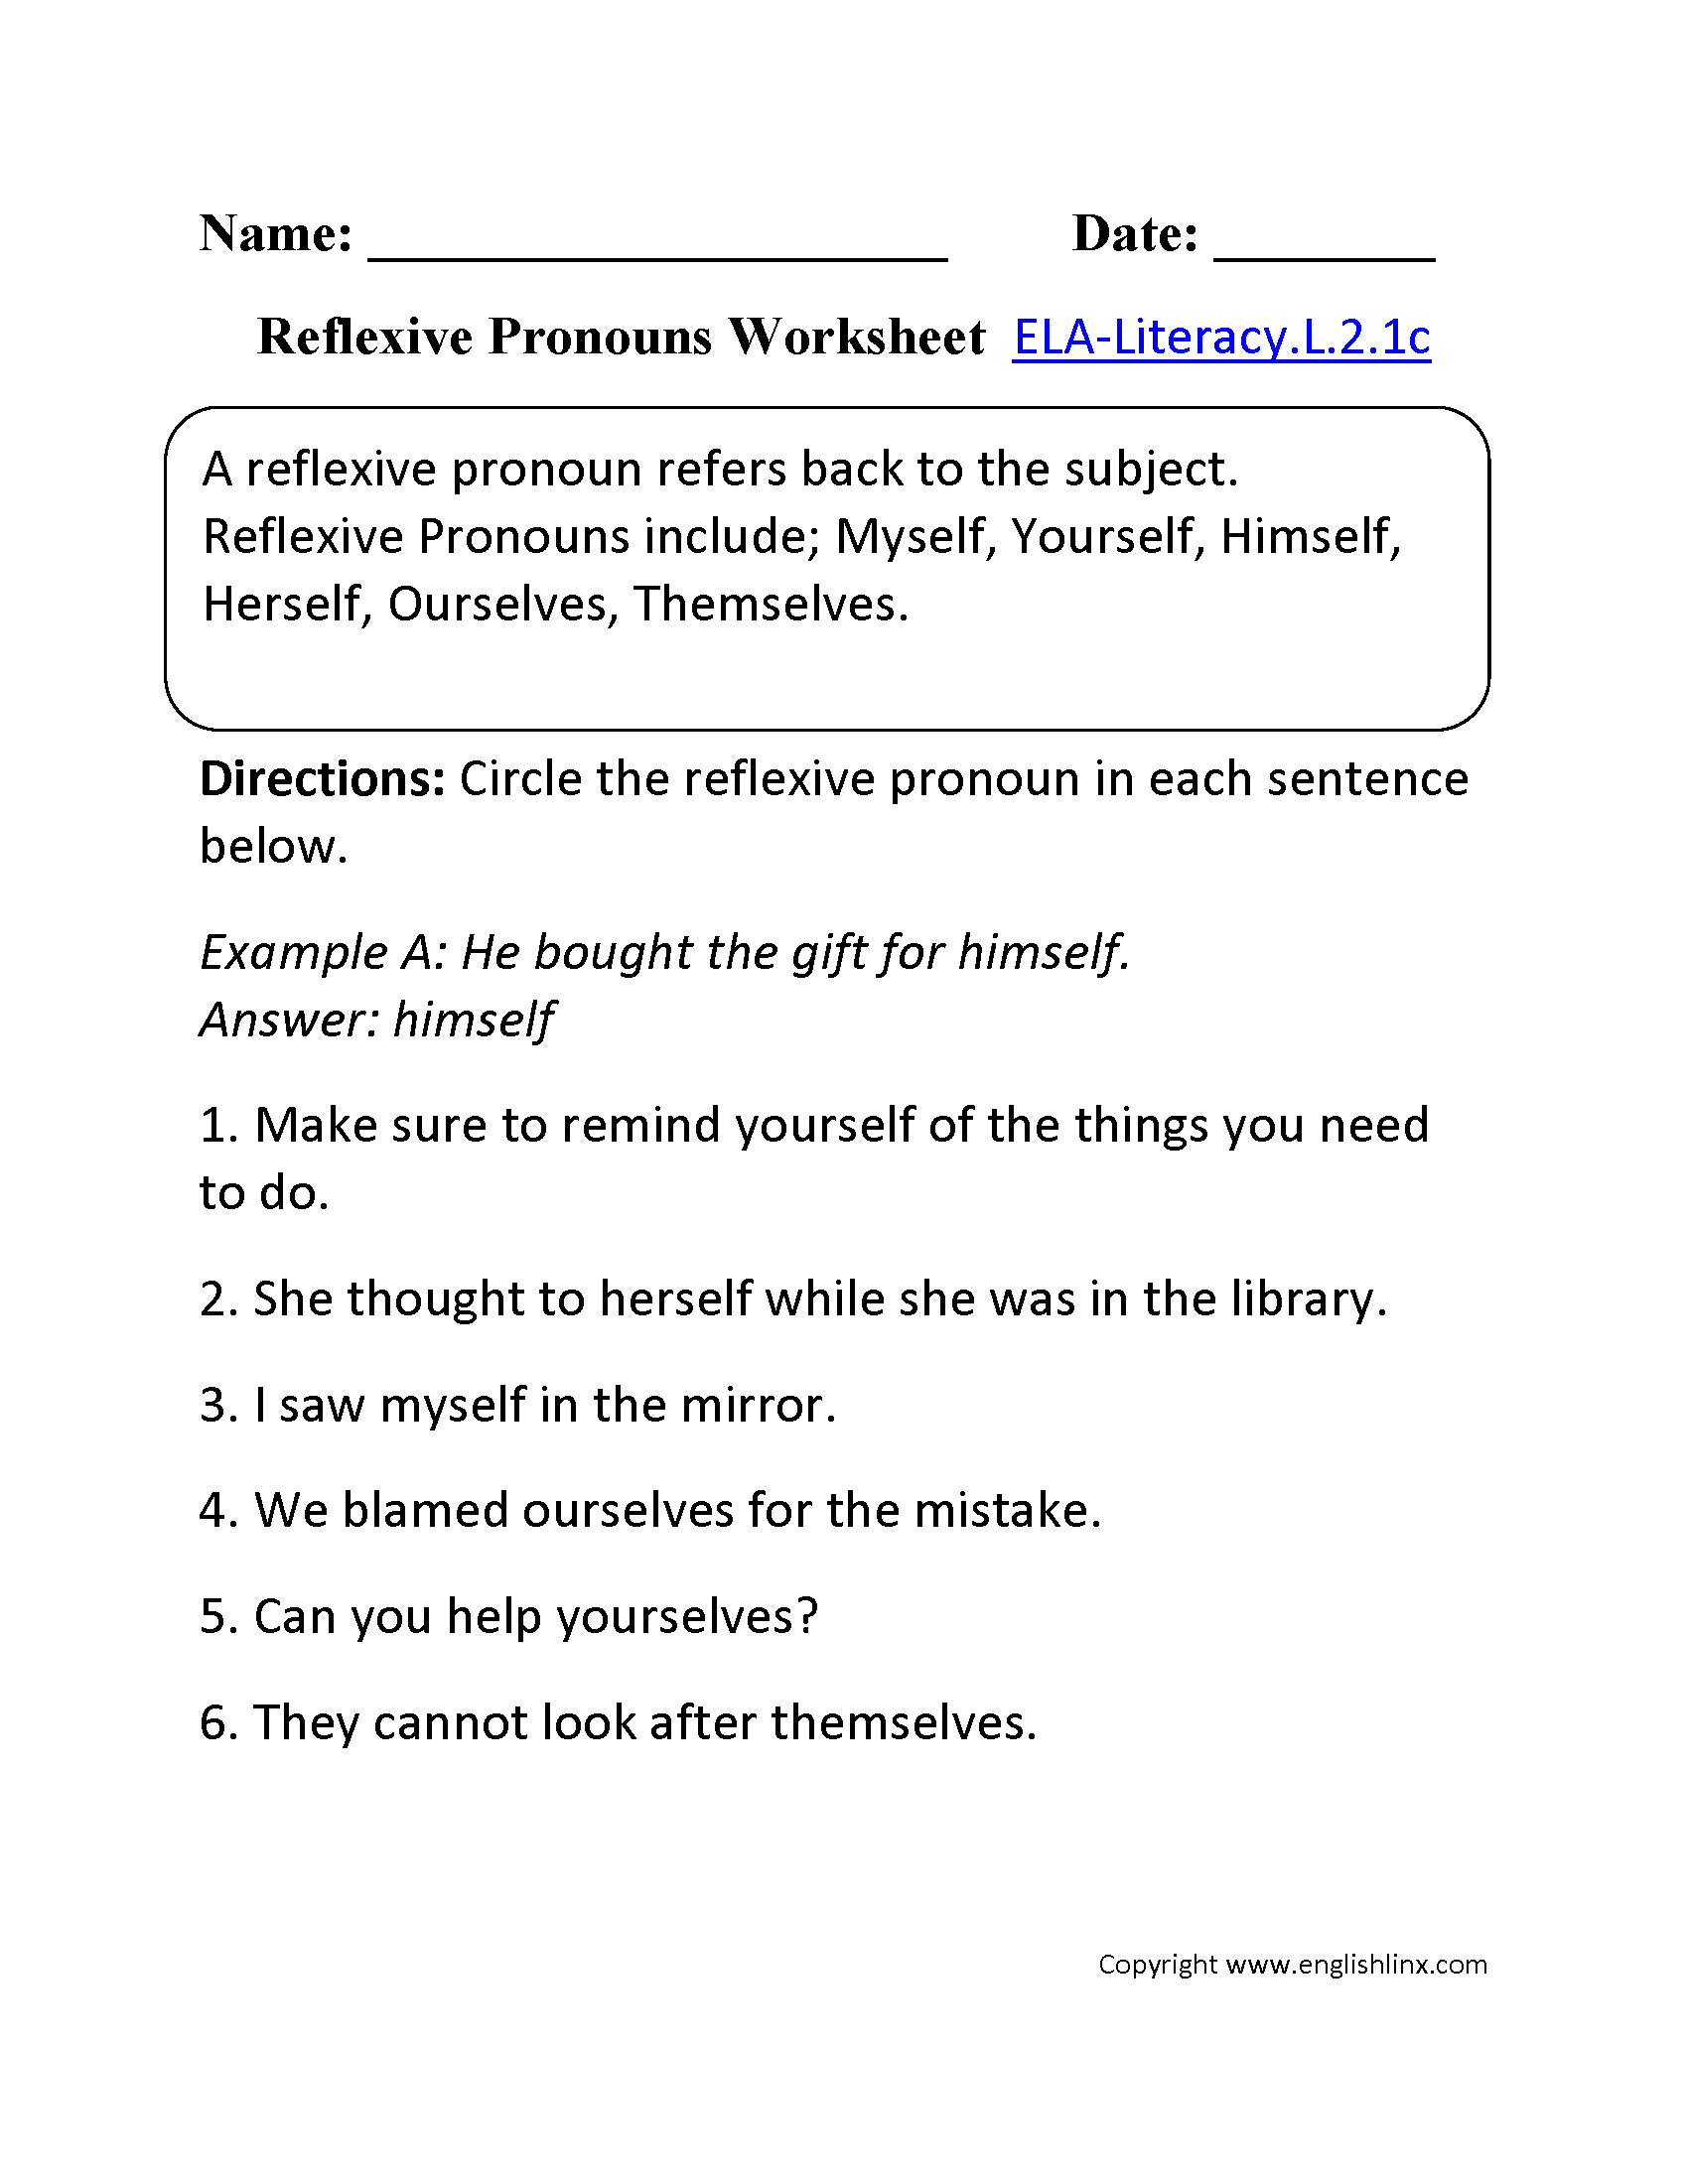 worksheet Reflexive Pronoun Worksheets 2nd grade common core language worksheets reflexive pronouns worksheet 2 ela literacy l 1c worksheet